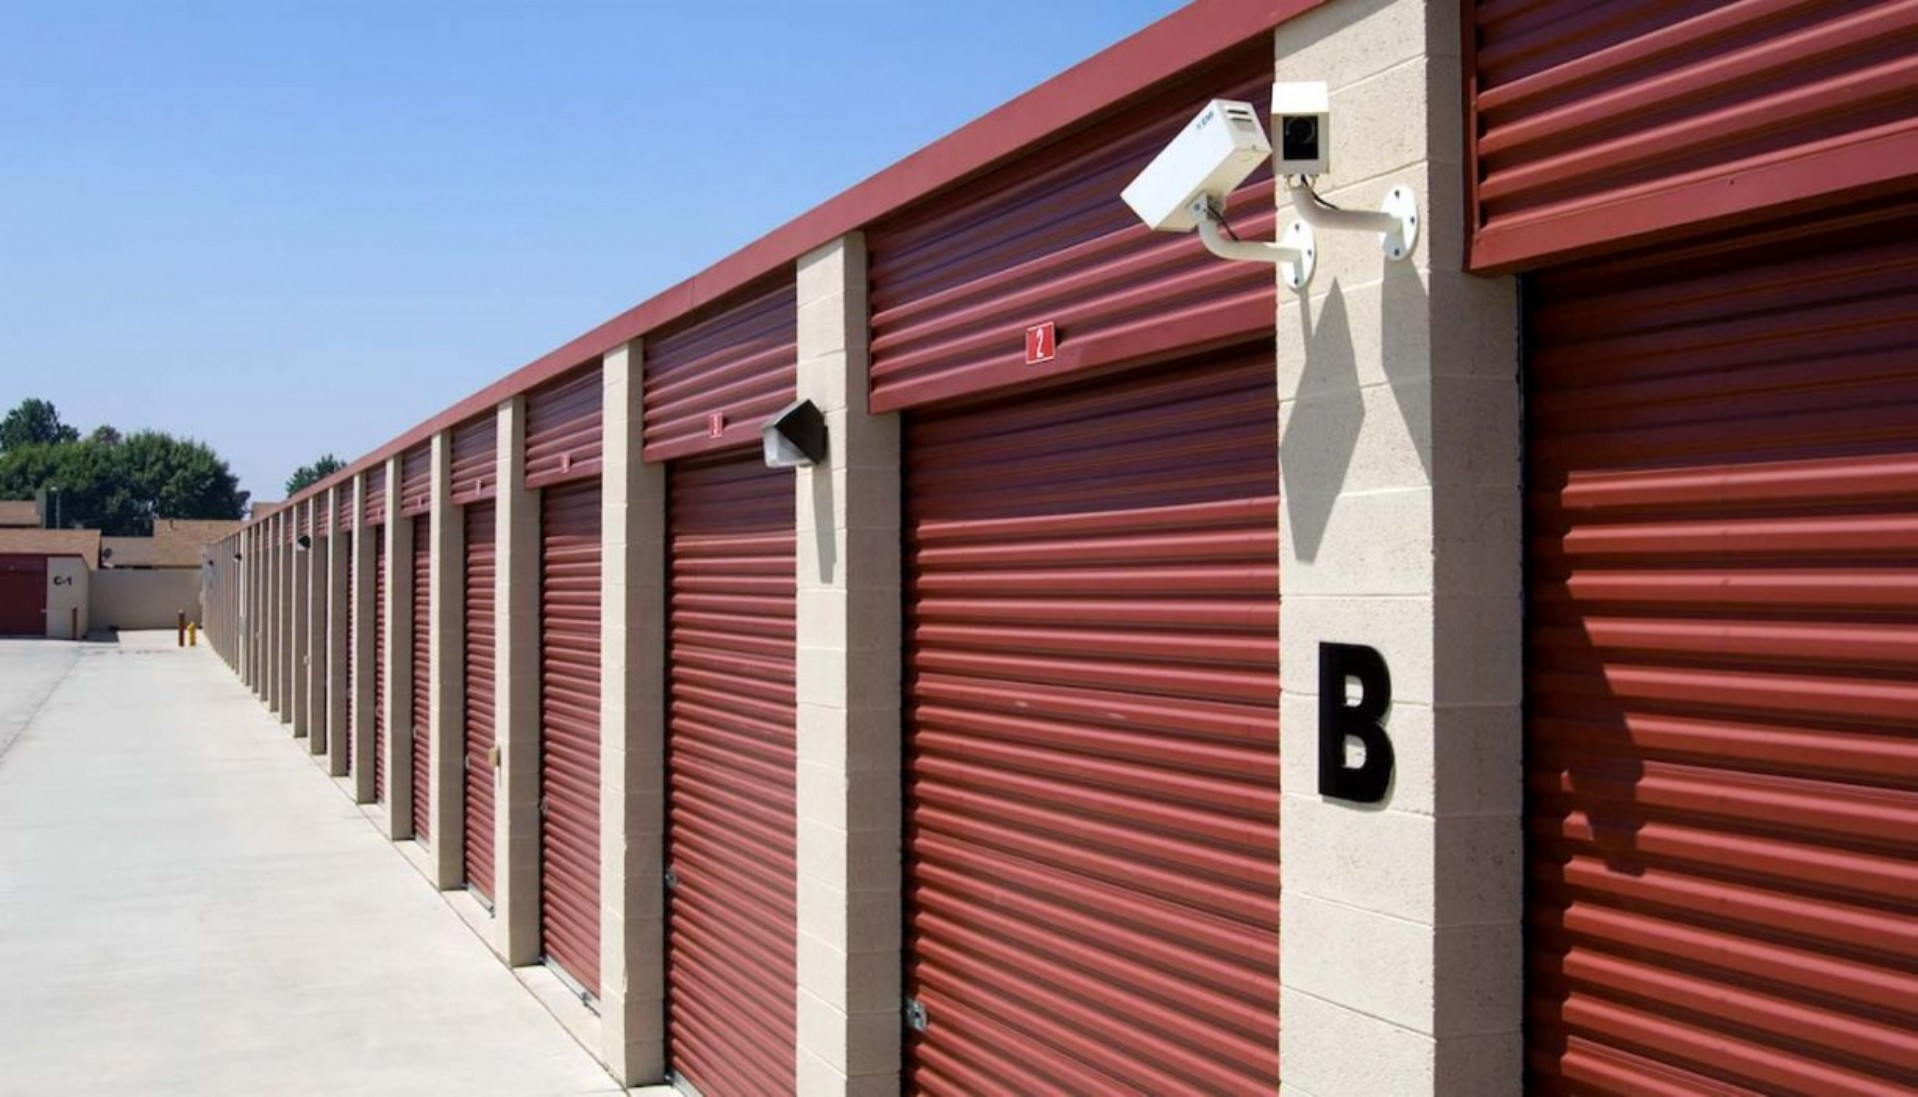 Extra large drive up storage units with roll up doors and security camera on the building